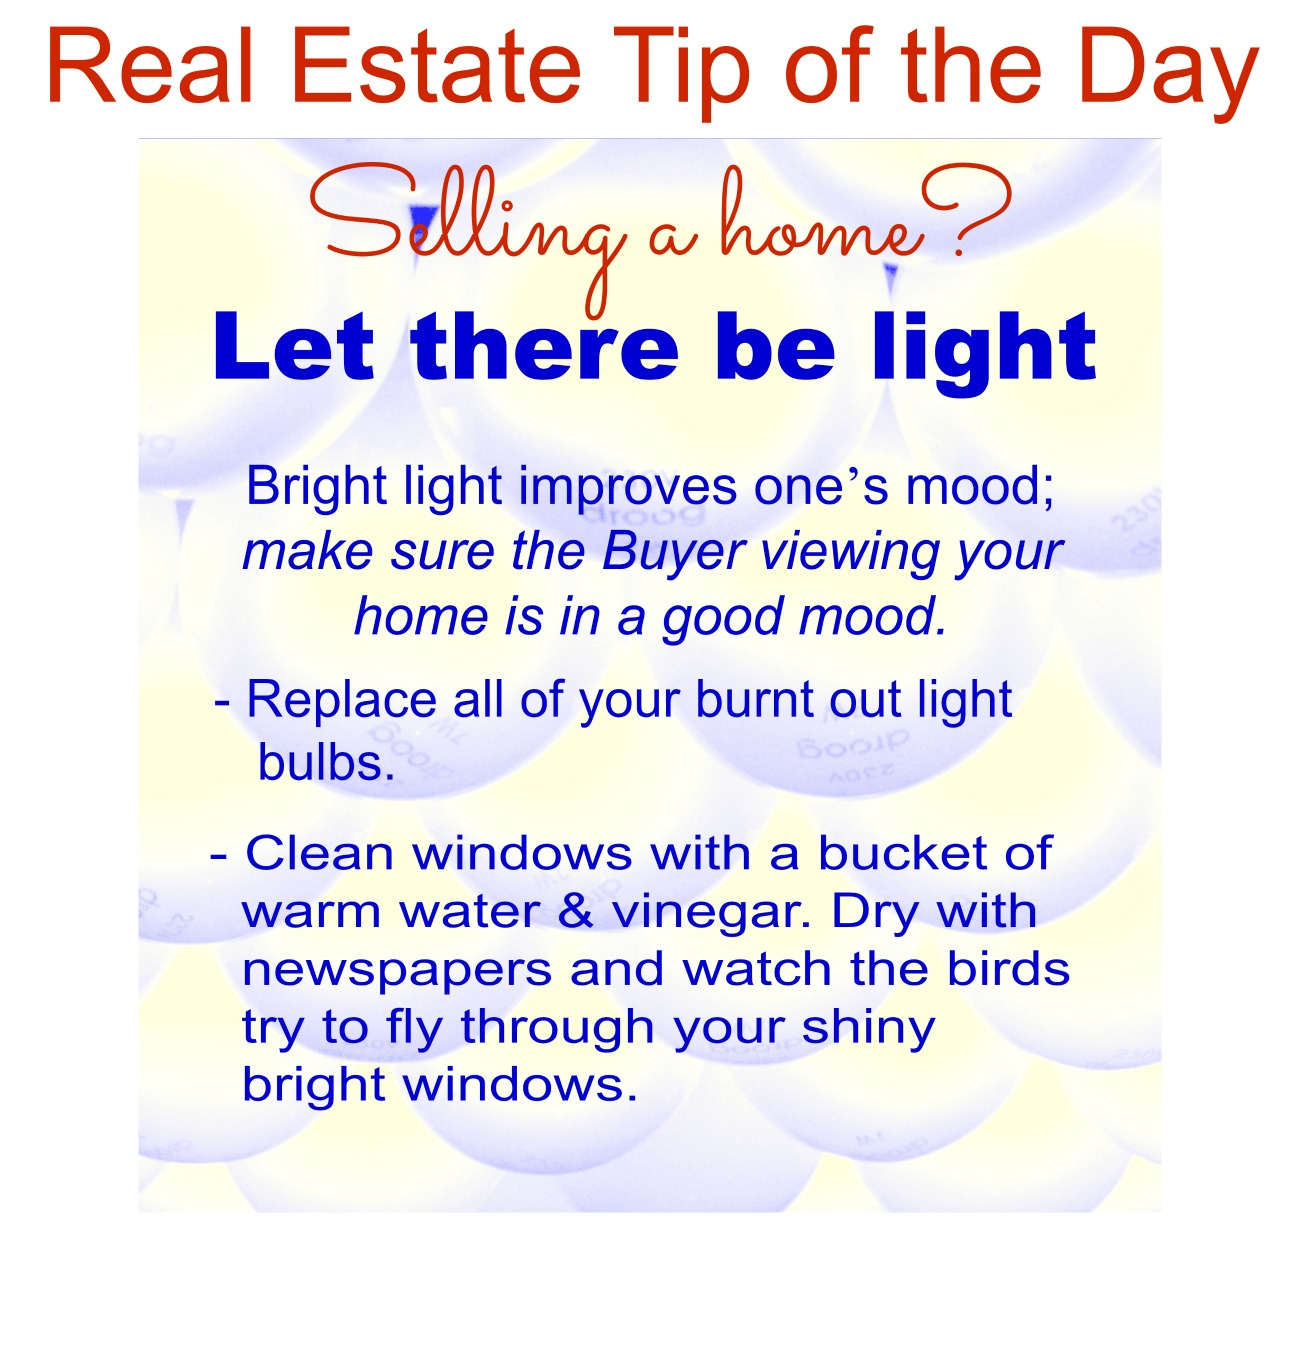 Real-Estate-Tip-of-the-Day-Sept-19-2013-IYH.jpg